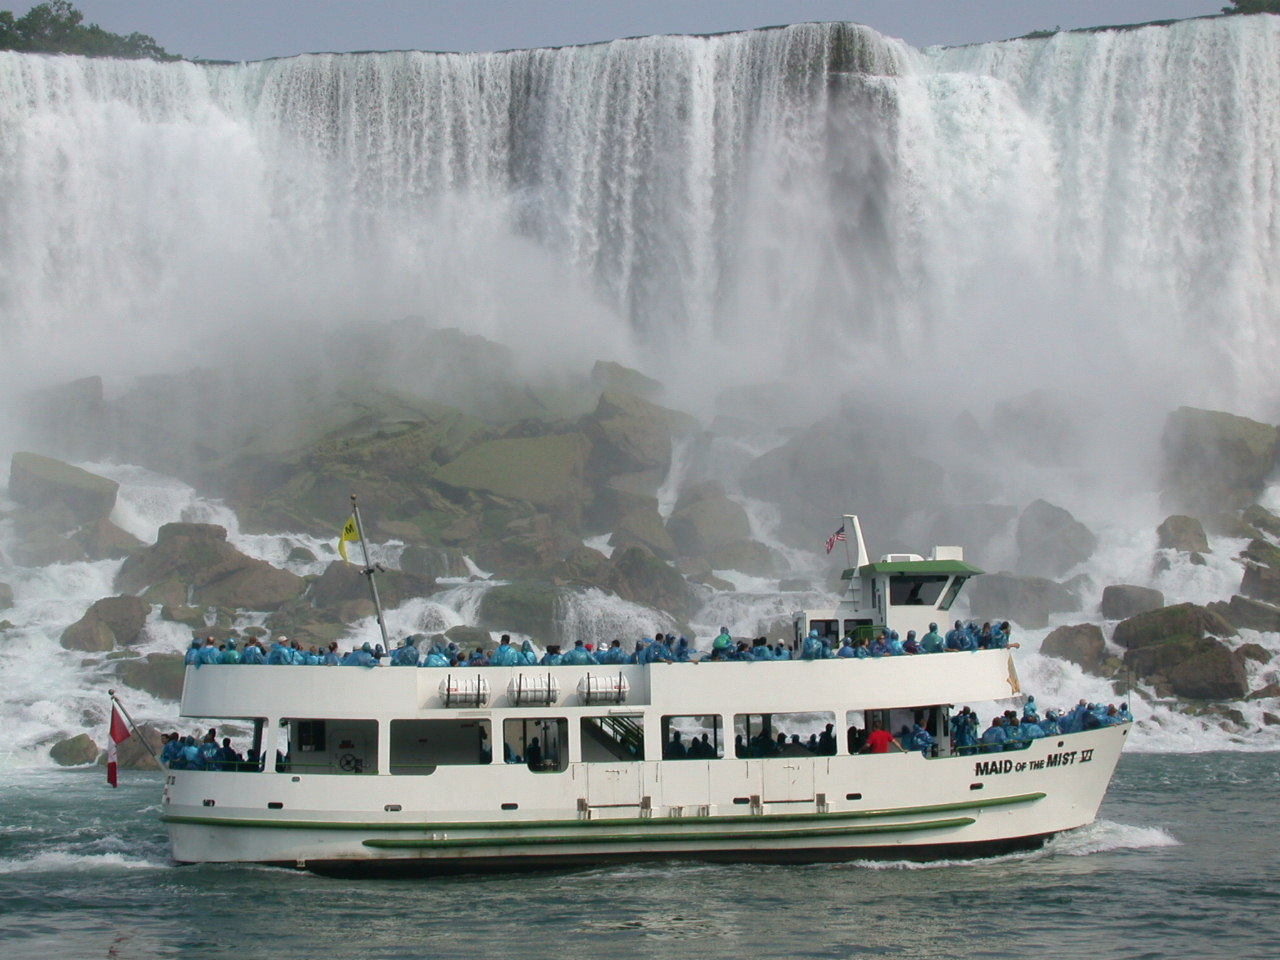 Maid of the Mist in Niagara Falls is open for business!